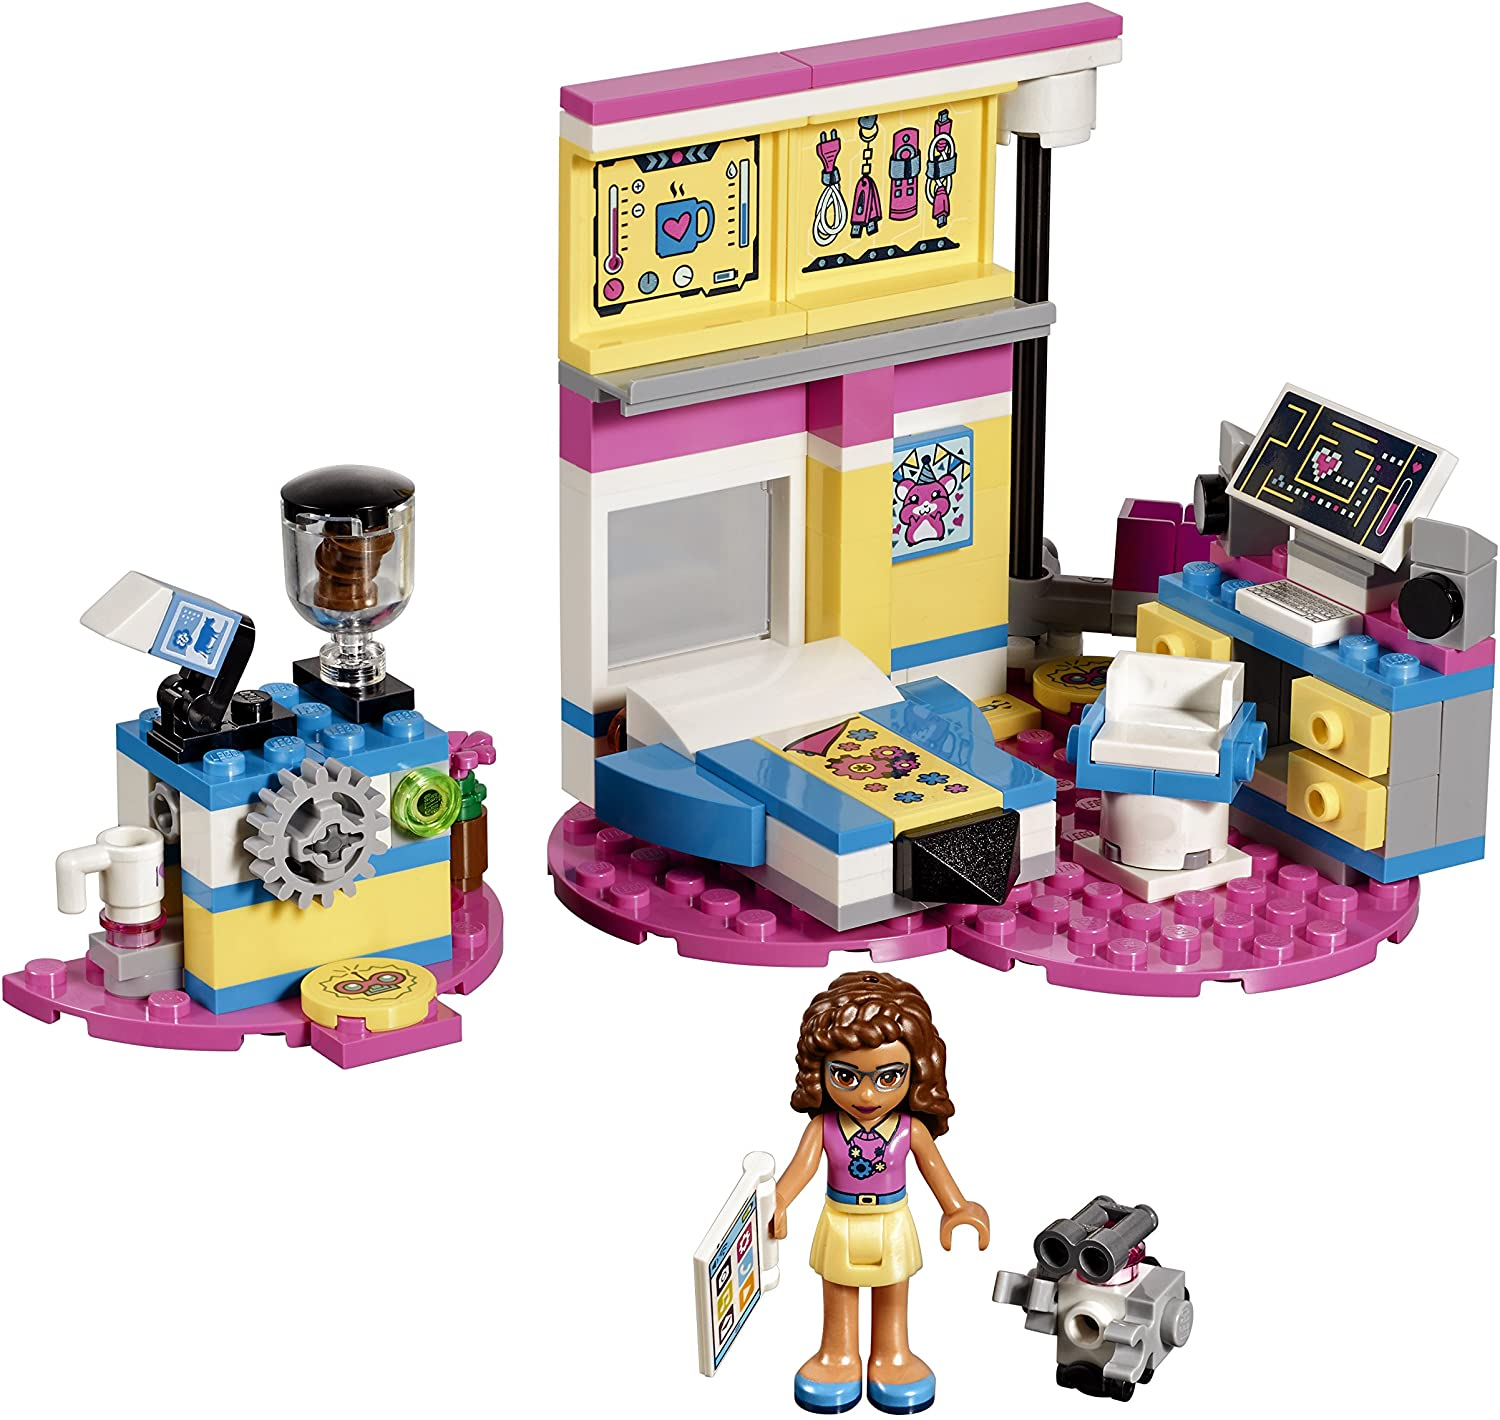 Lego Friends 41329